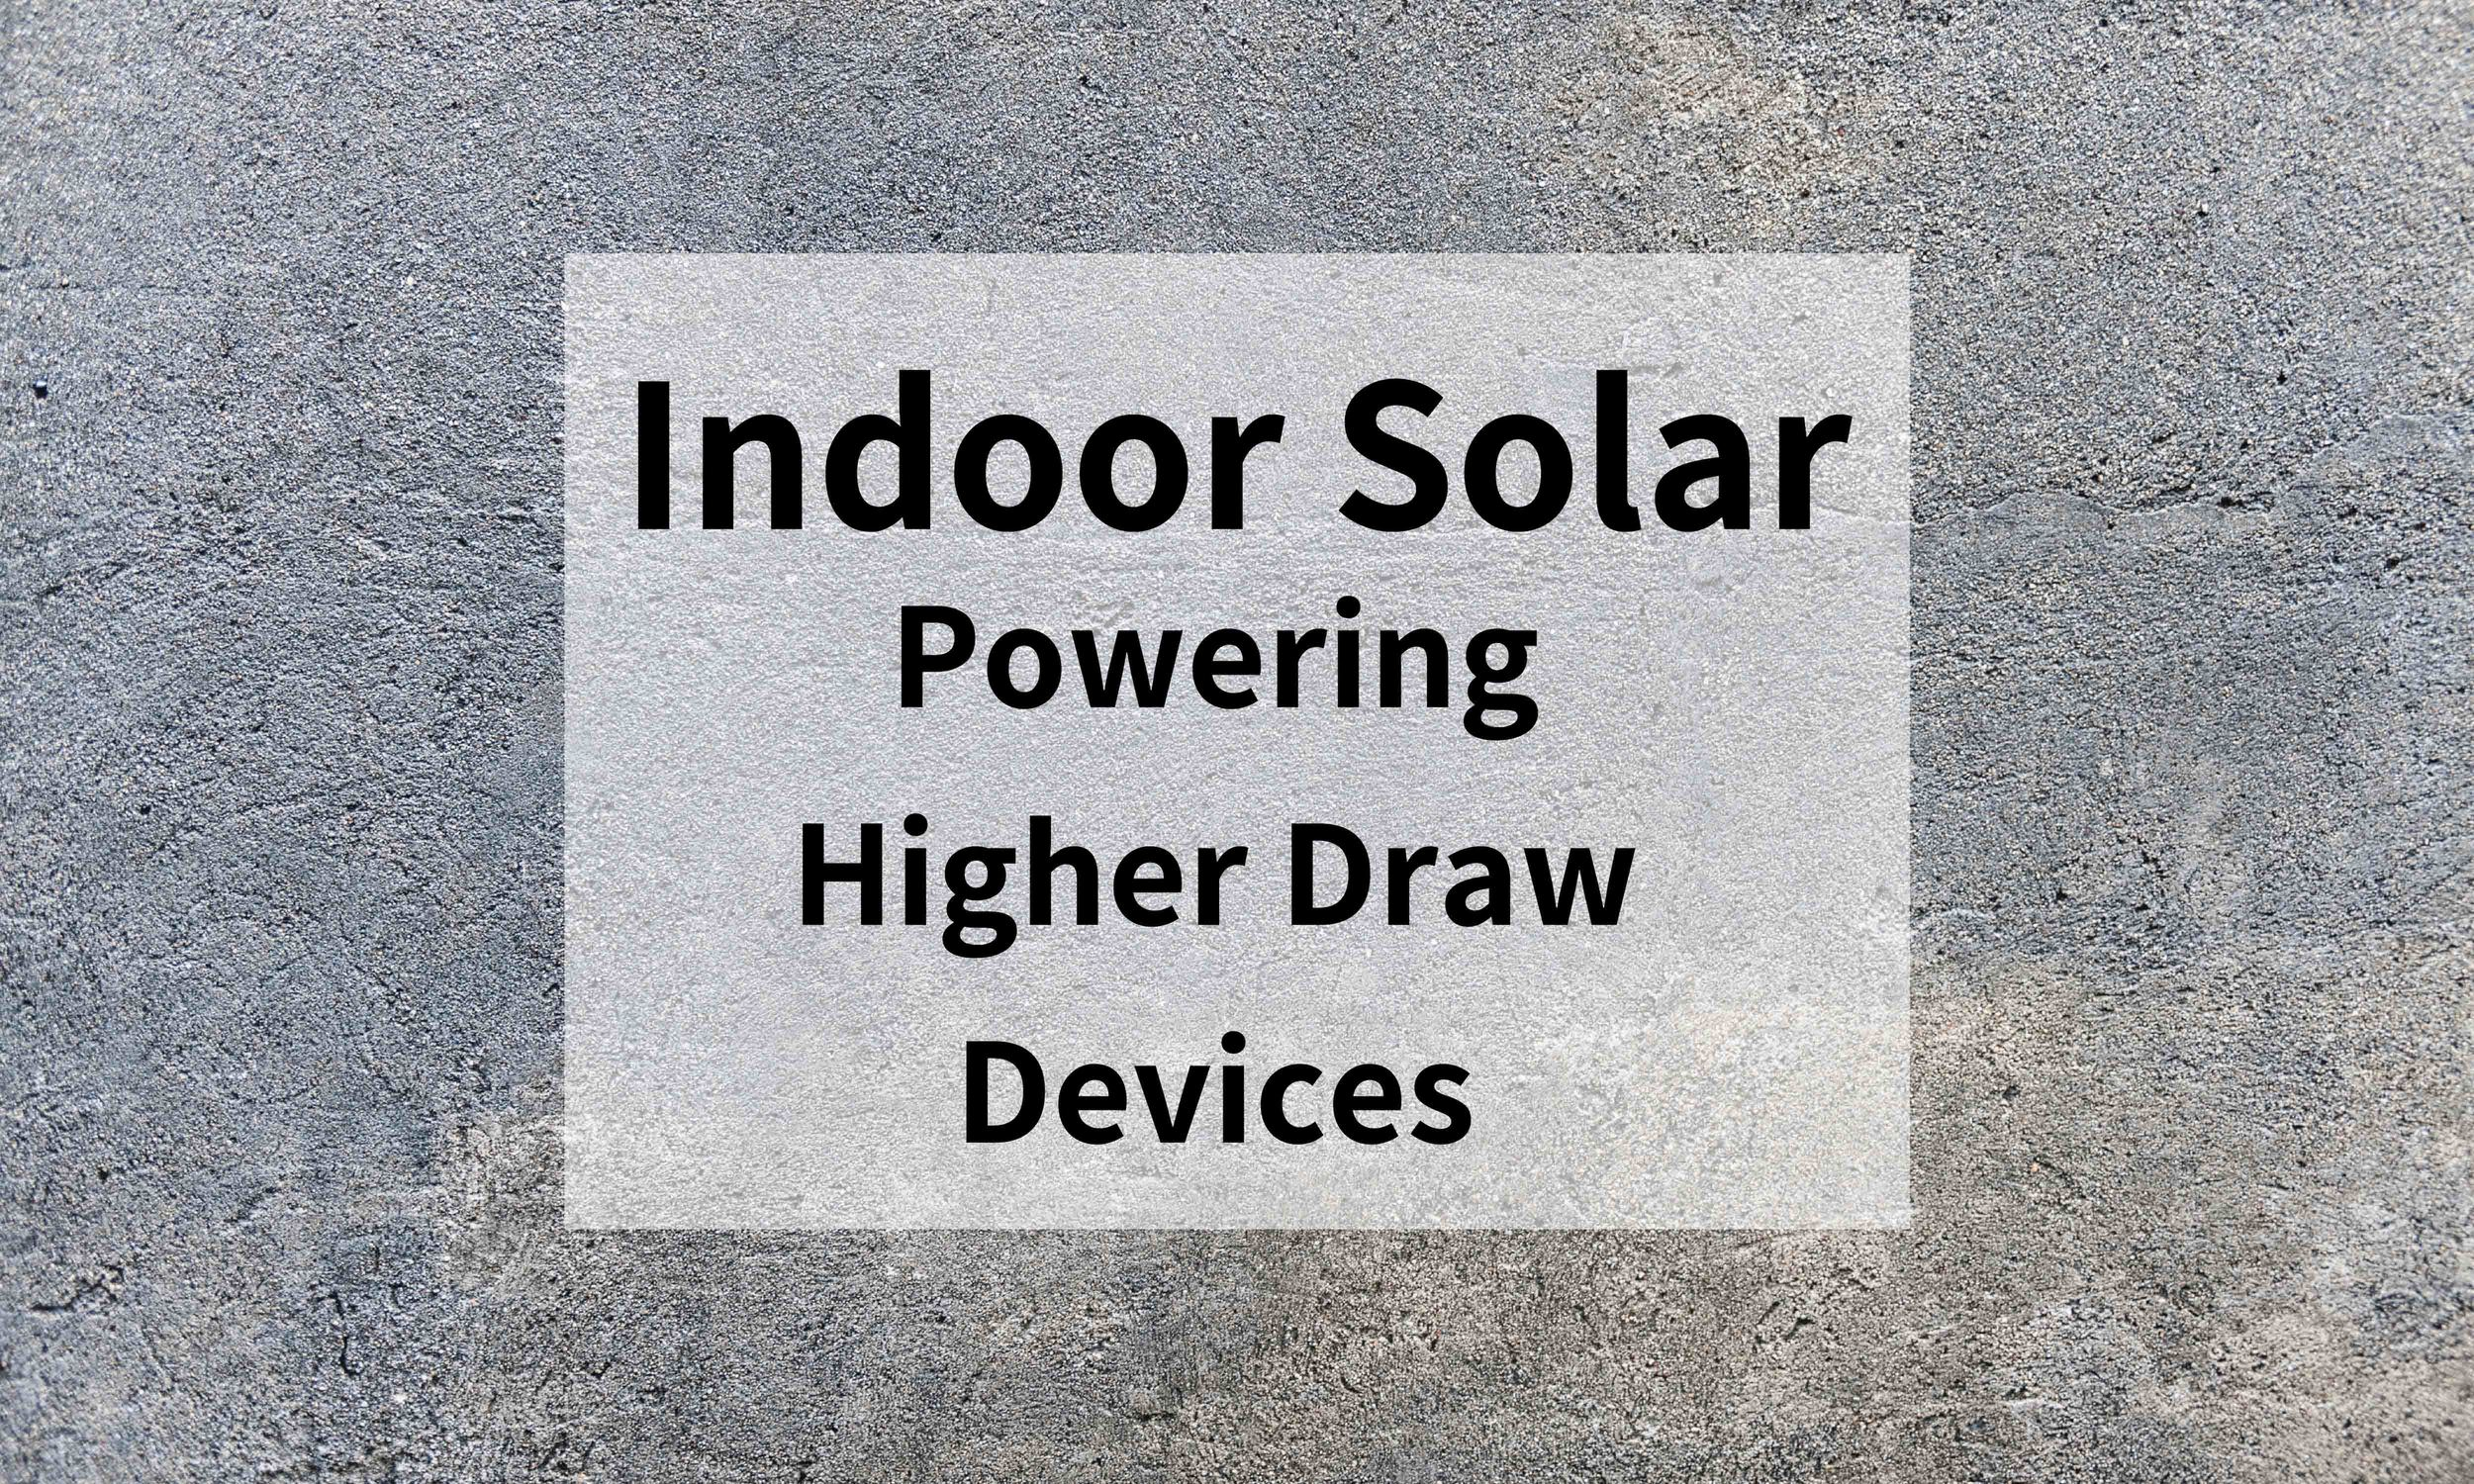 Indoor Solar: Powering Higher Draw Devices